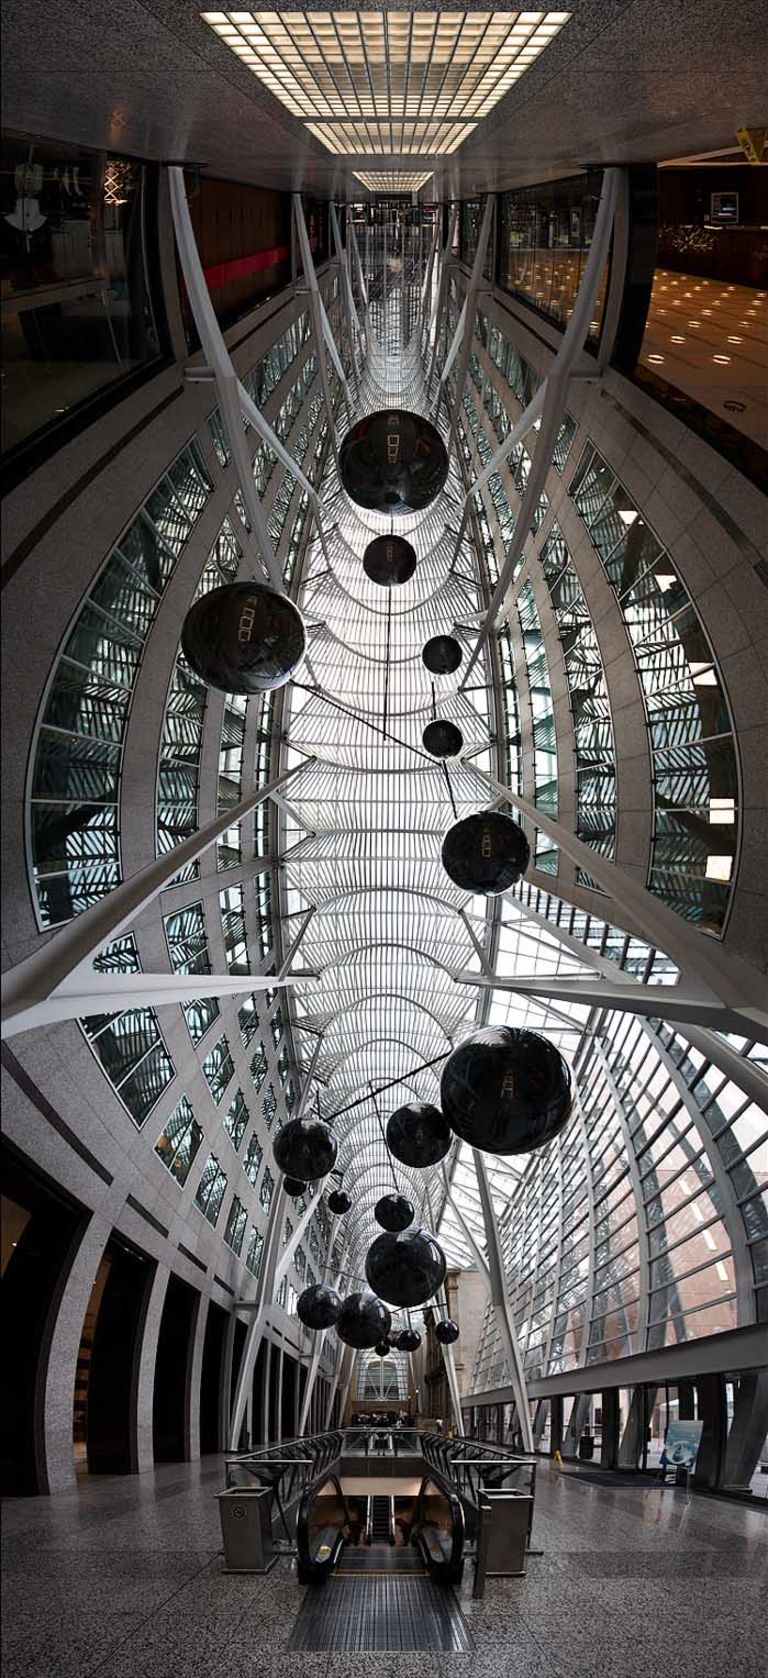 Art installation by Xavier Veilhan and metal ceiling structure by Santiago Calatrava